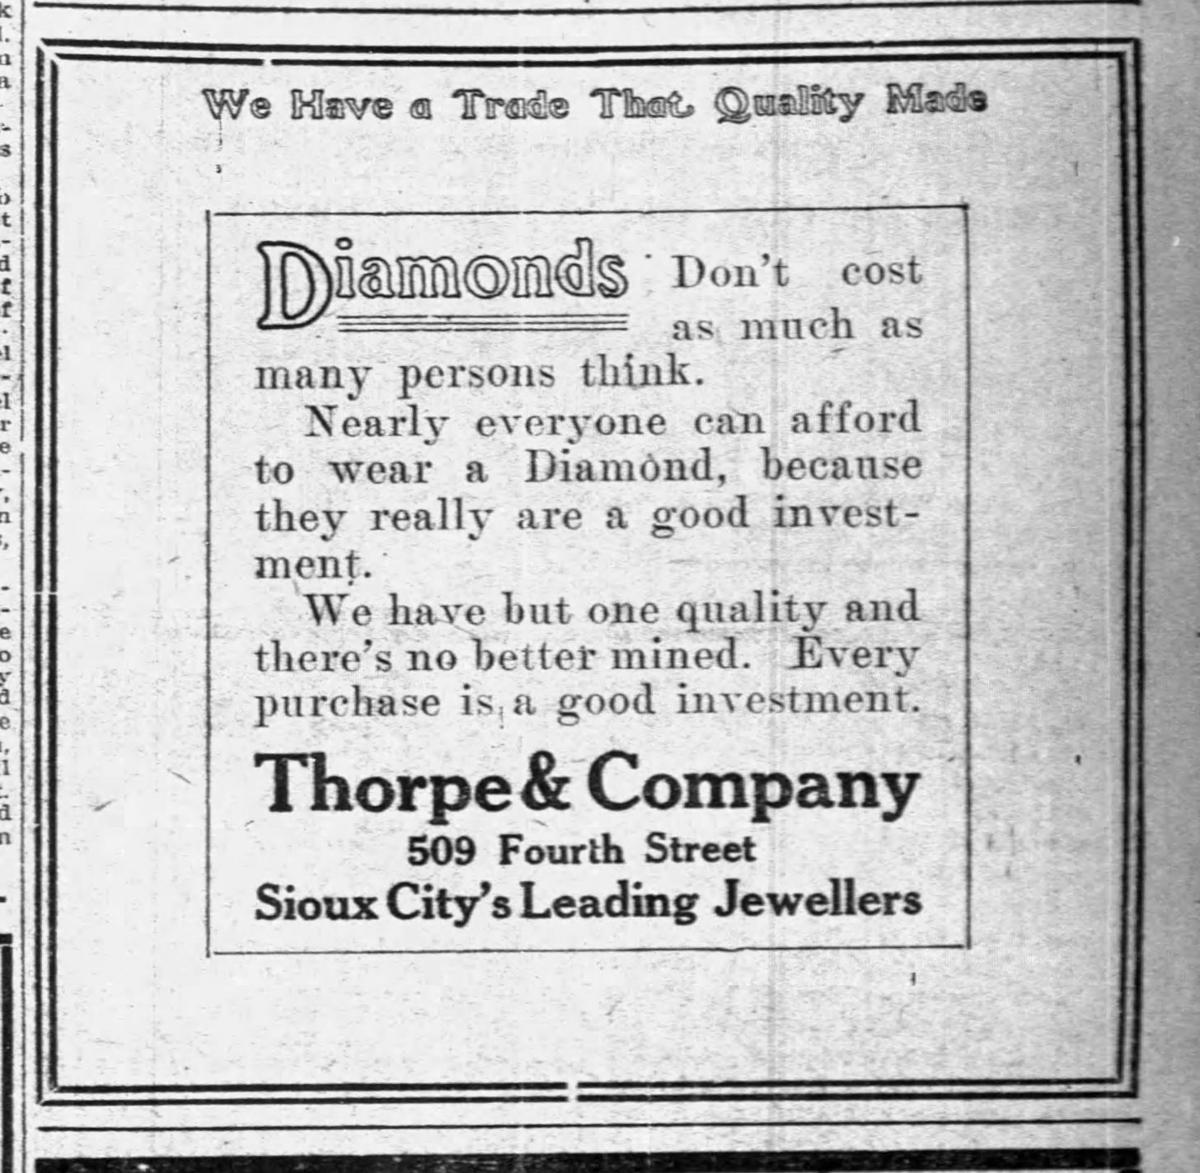 Thorpe advertisement July 1913